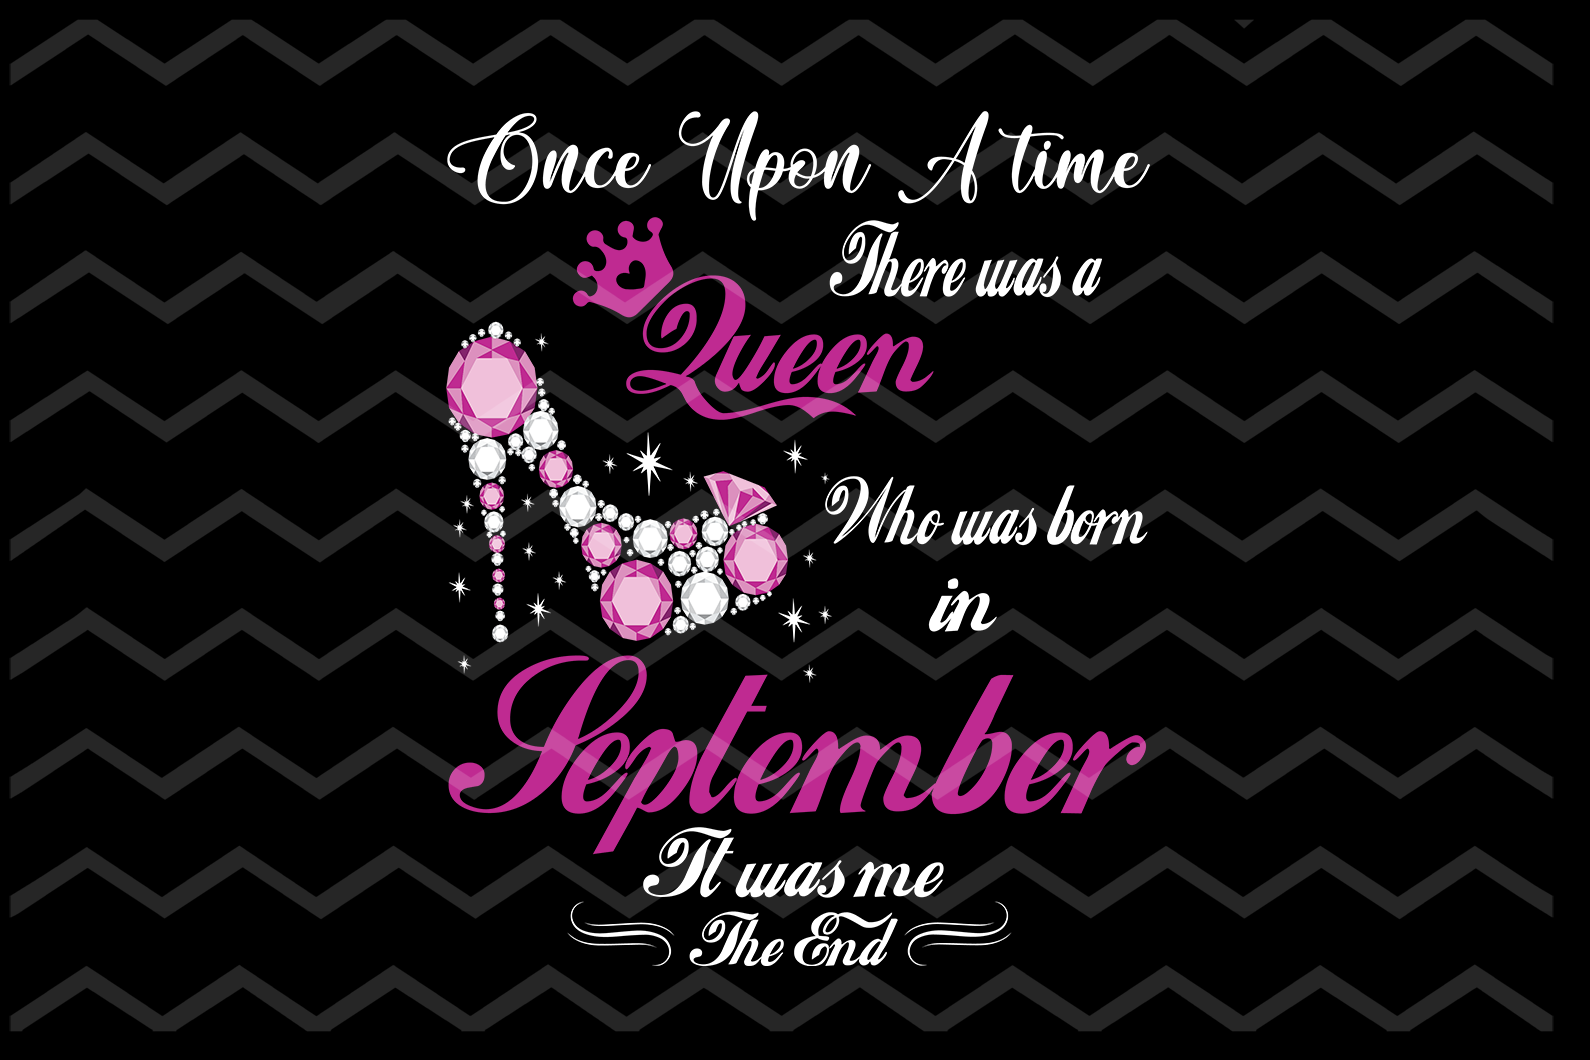 Once upon a time there was a Queen who was born in September It was me The End, Diva, Princess, Queen, Slay, SVG